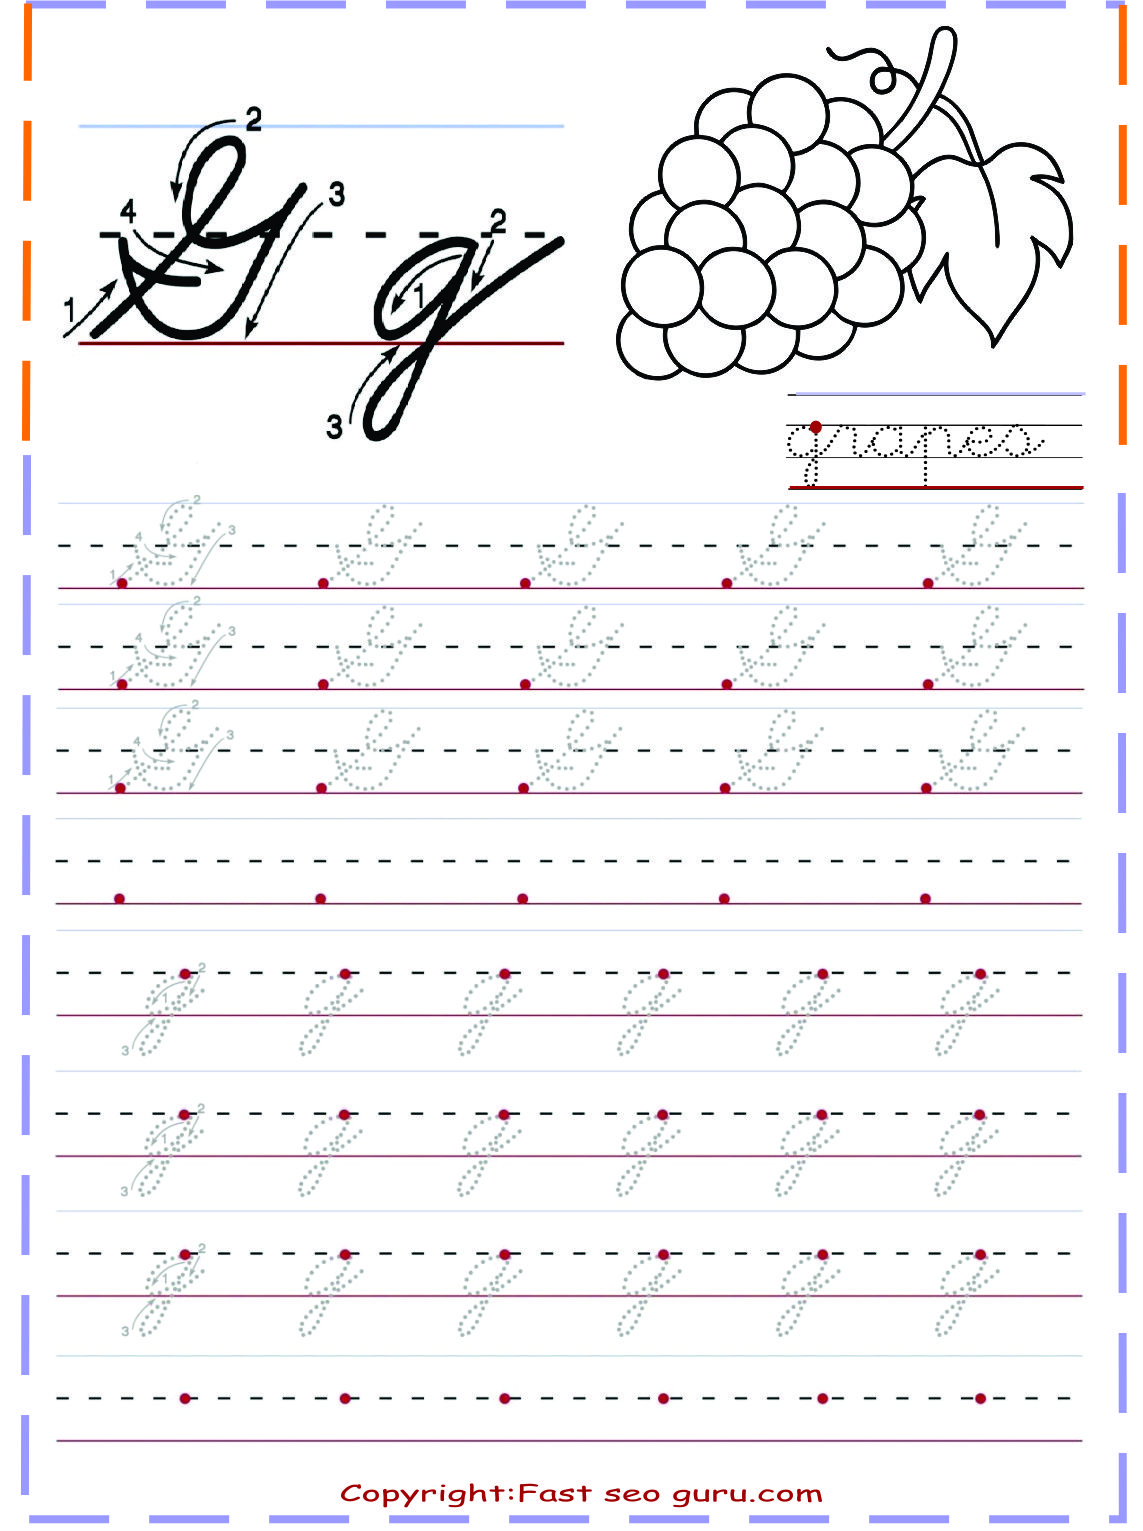 Cursive Handwriting Practice Worksheets Letter G For